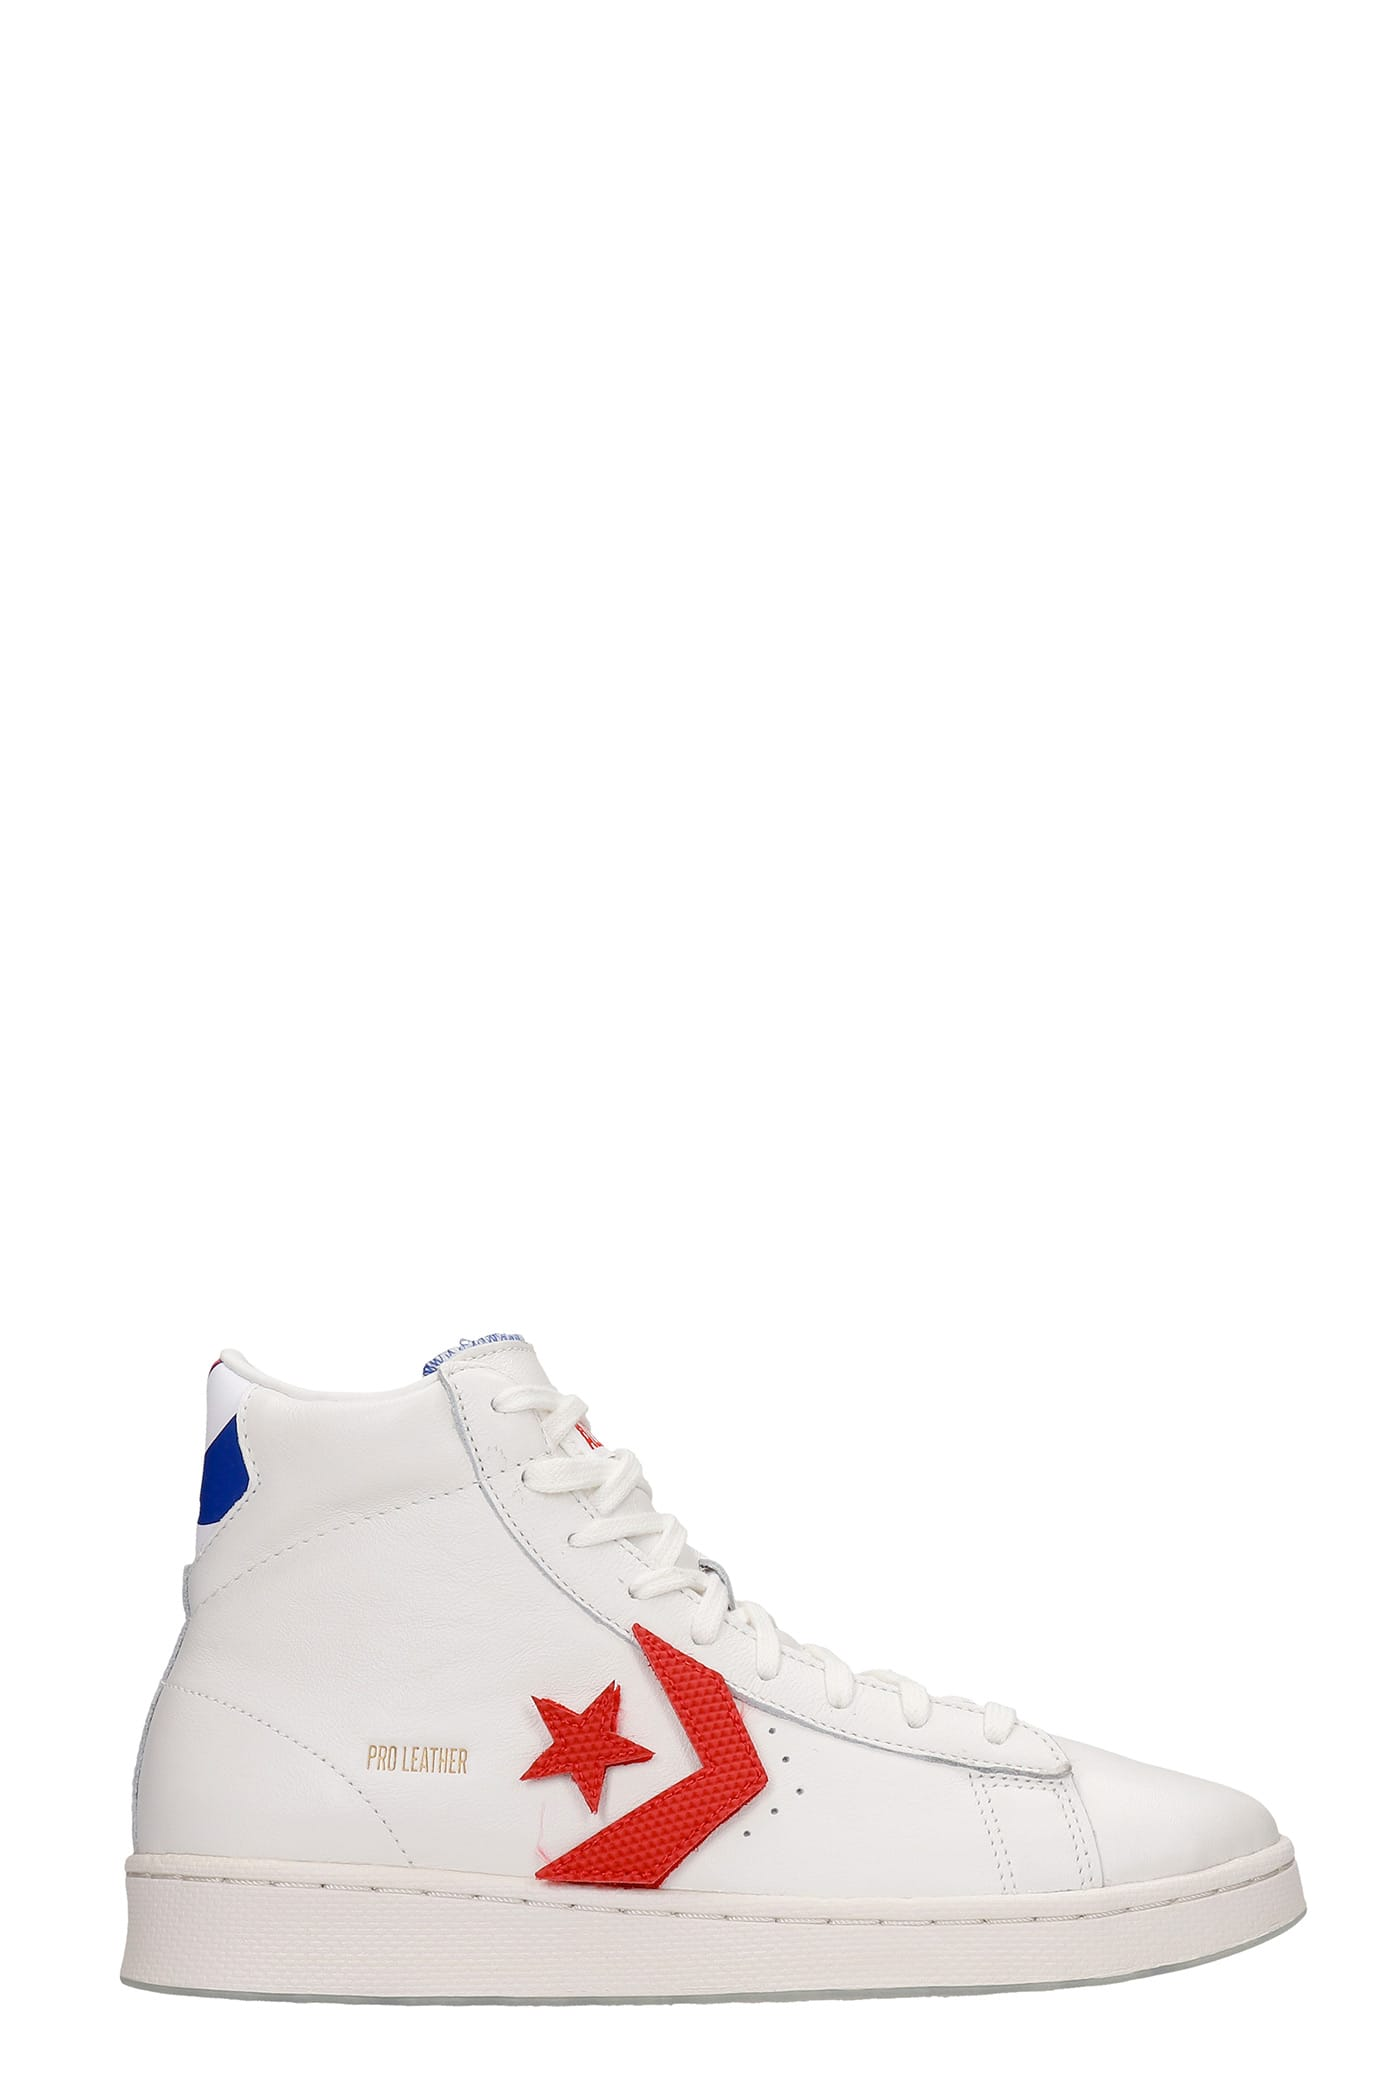 Converse Leathers PRO LEATHER SNEAKERS IN WHITE LEATHER